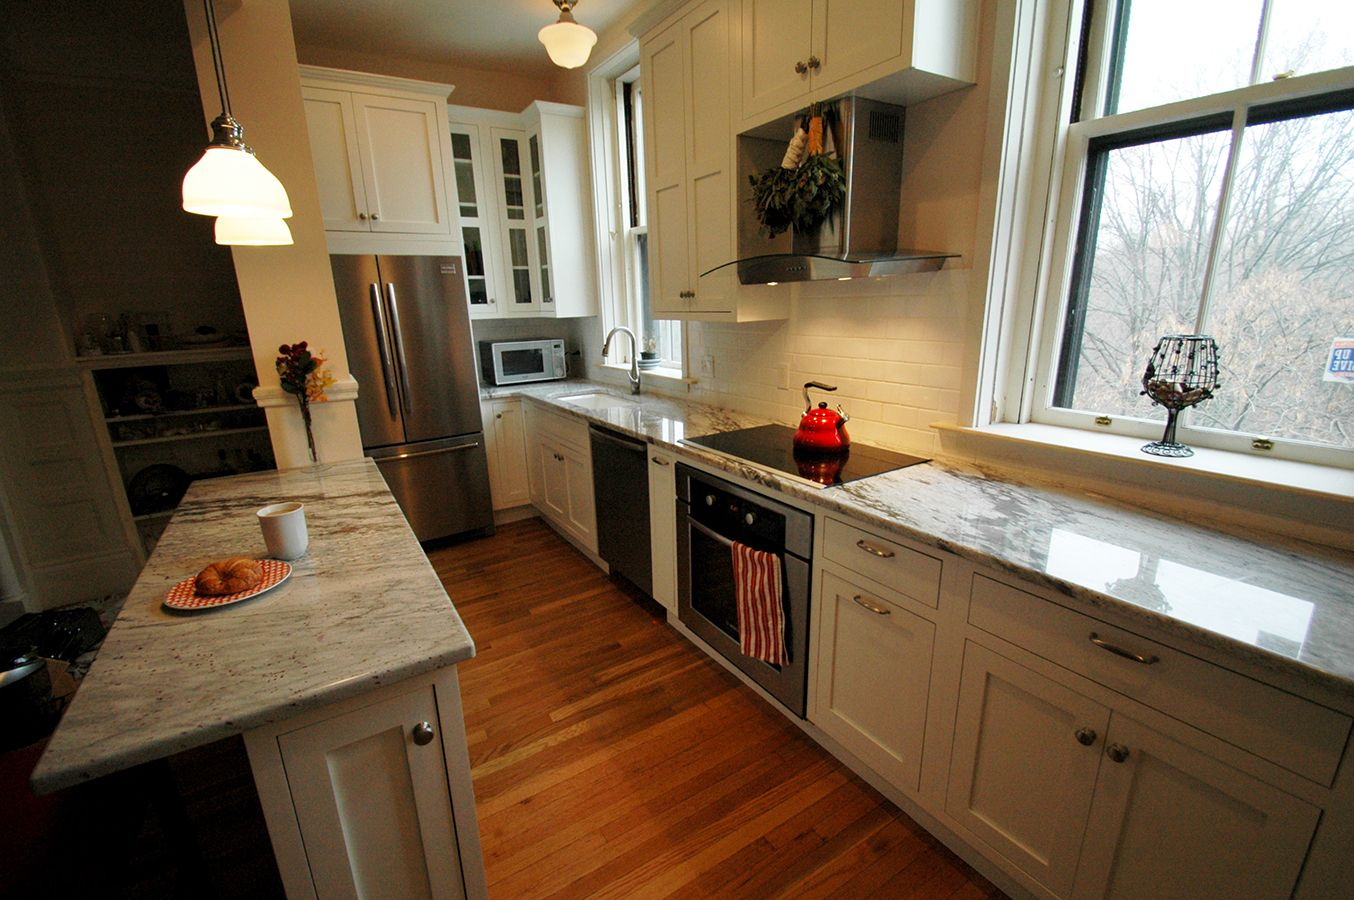 High Quality This Brookline Kitchen Remodel Features Before And After Pictures Of A  Small Galley Kitchen That Was Opened Up And Drastically Changed.